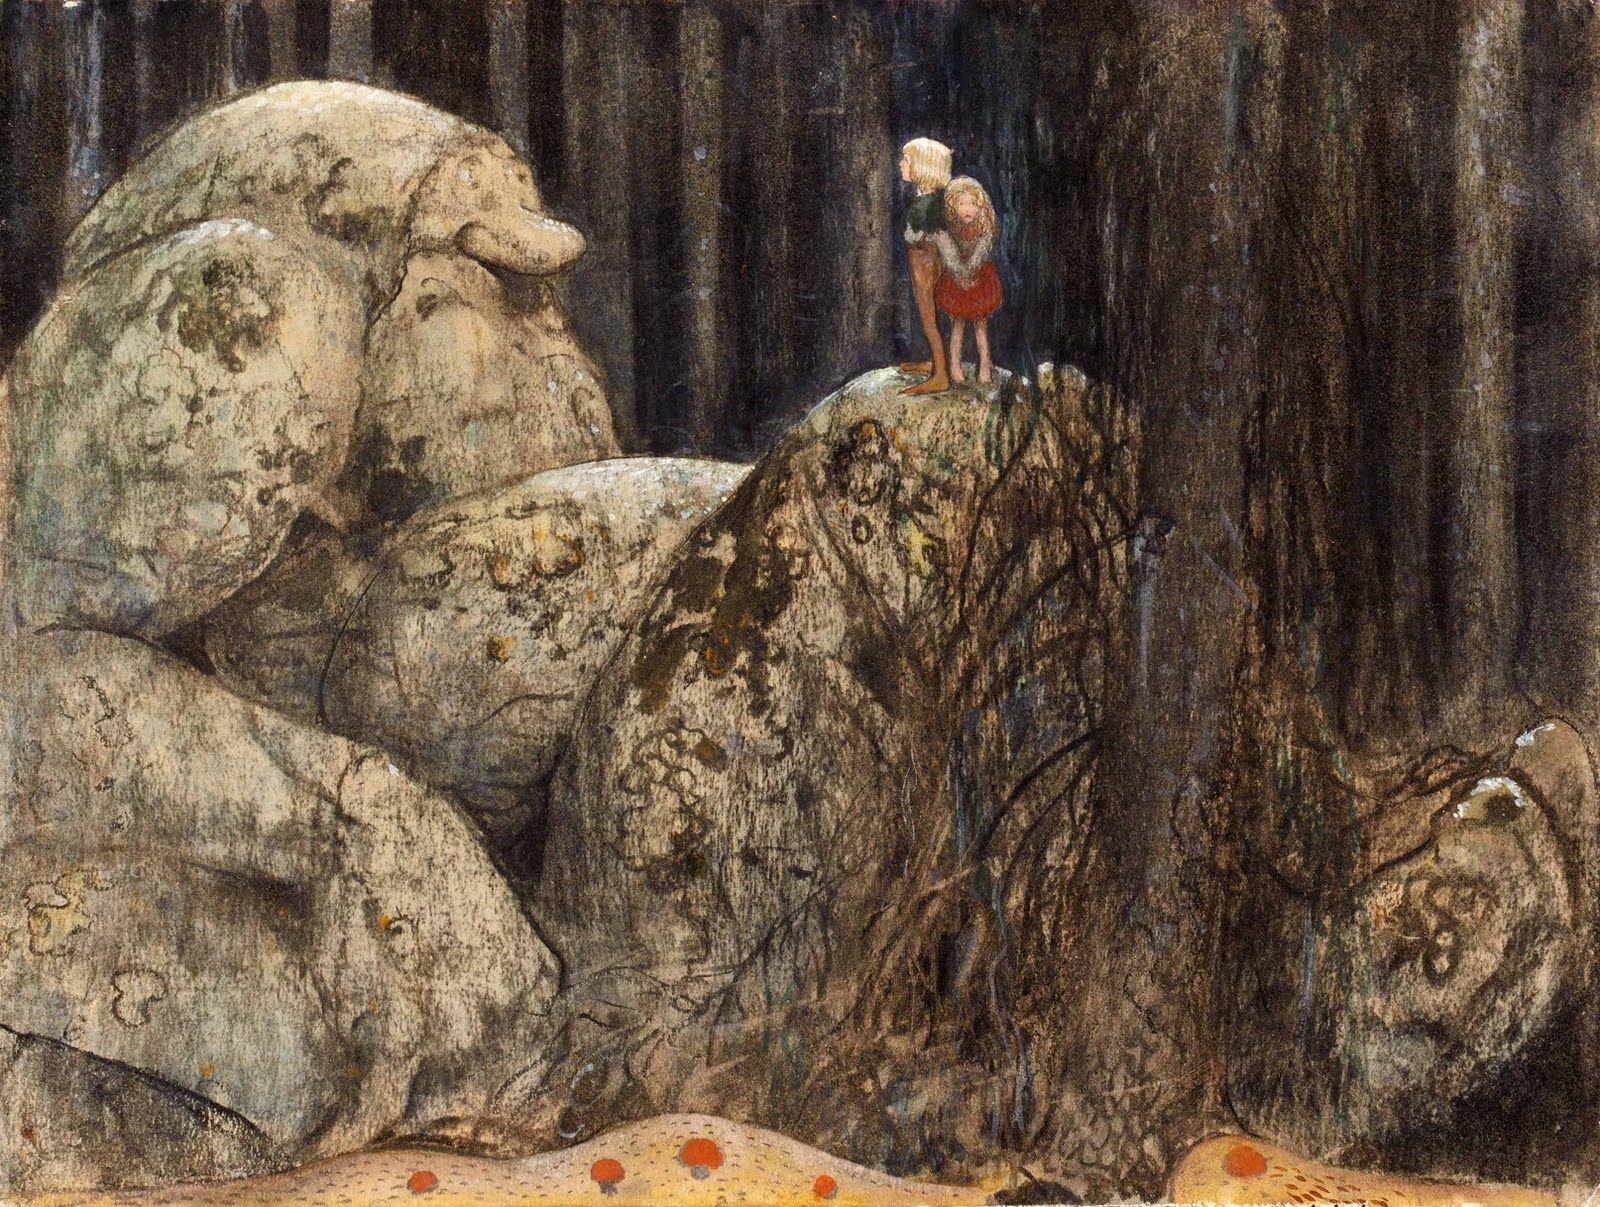 Йон Бауэрthe-child-and-the-stone-troll-john-bauer.jpg